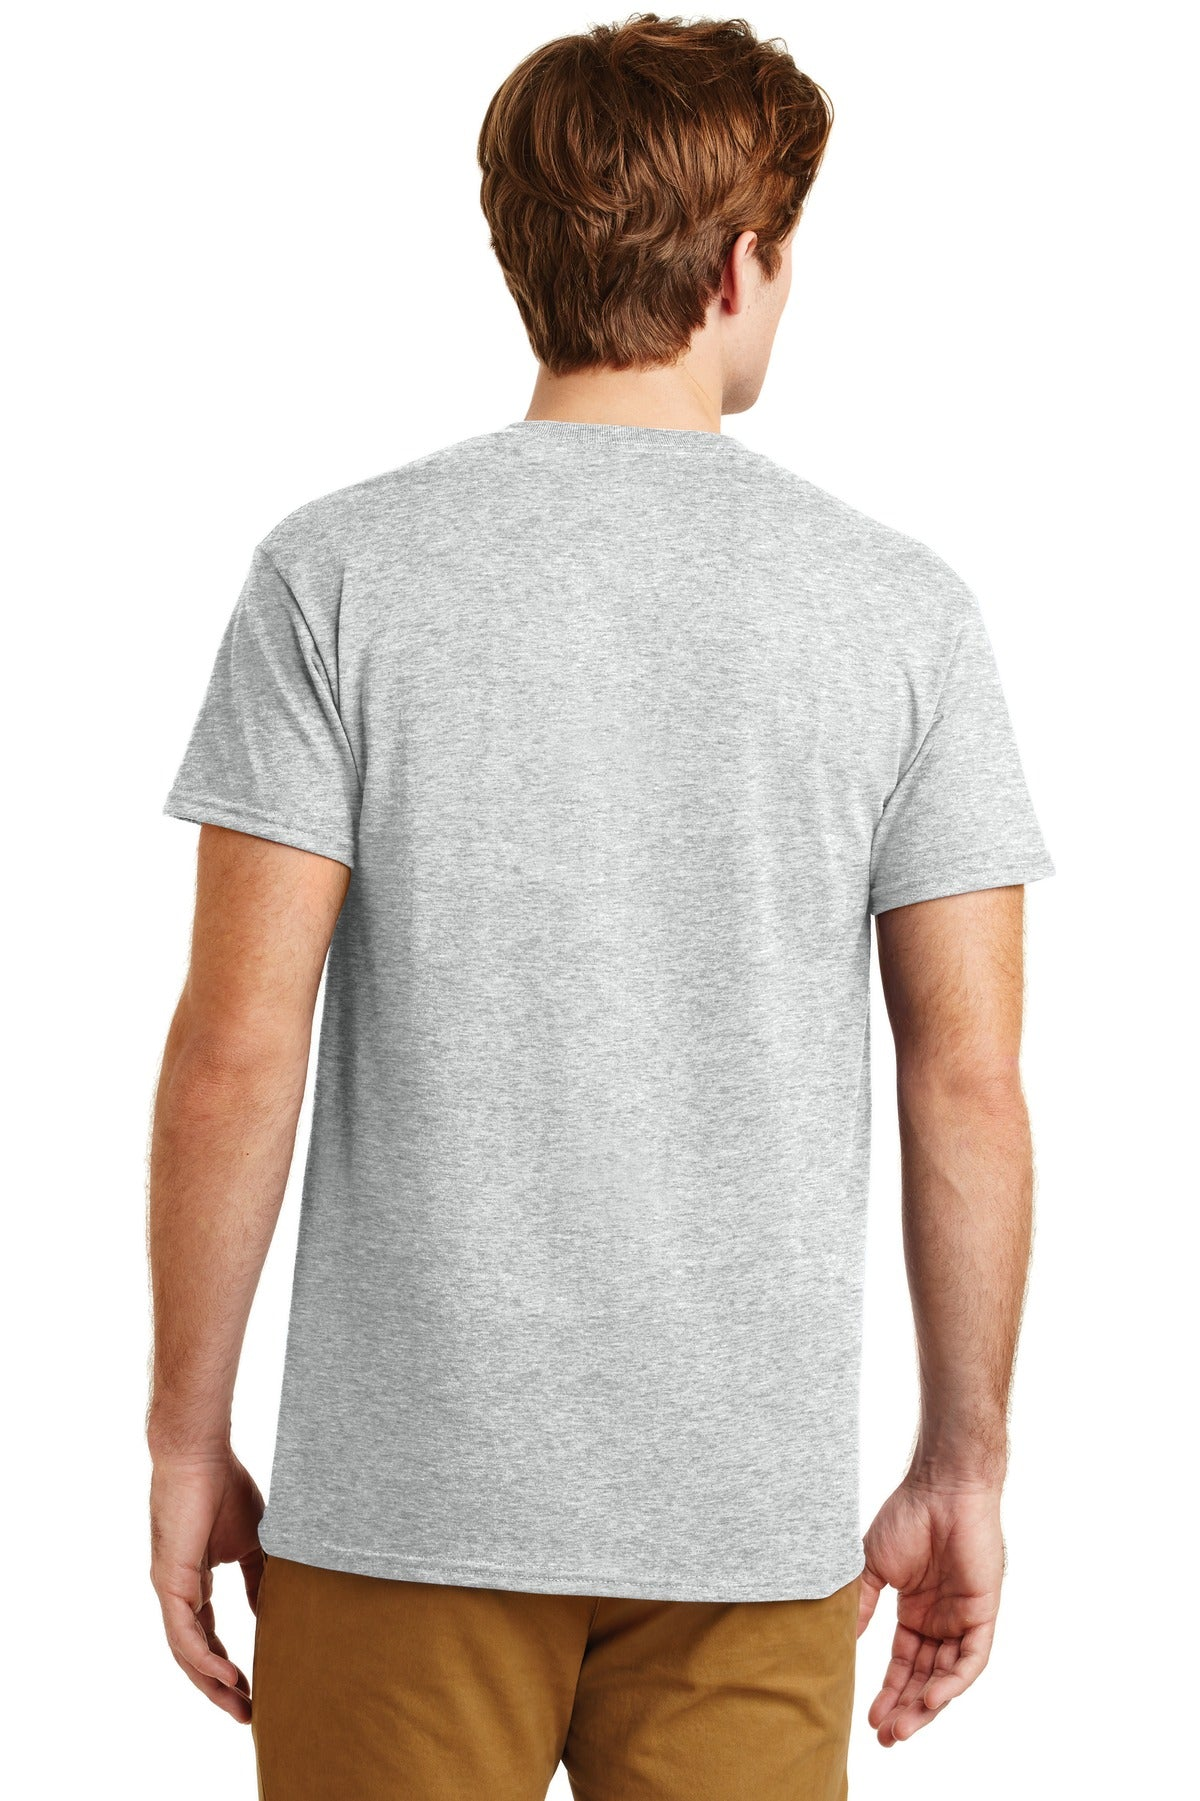 Ash Grey Gildan DryBlend 50 Cotton/50 Poly Pocket T-Shirt.